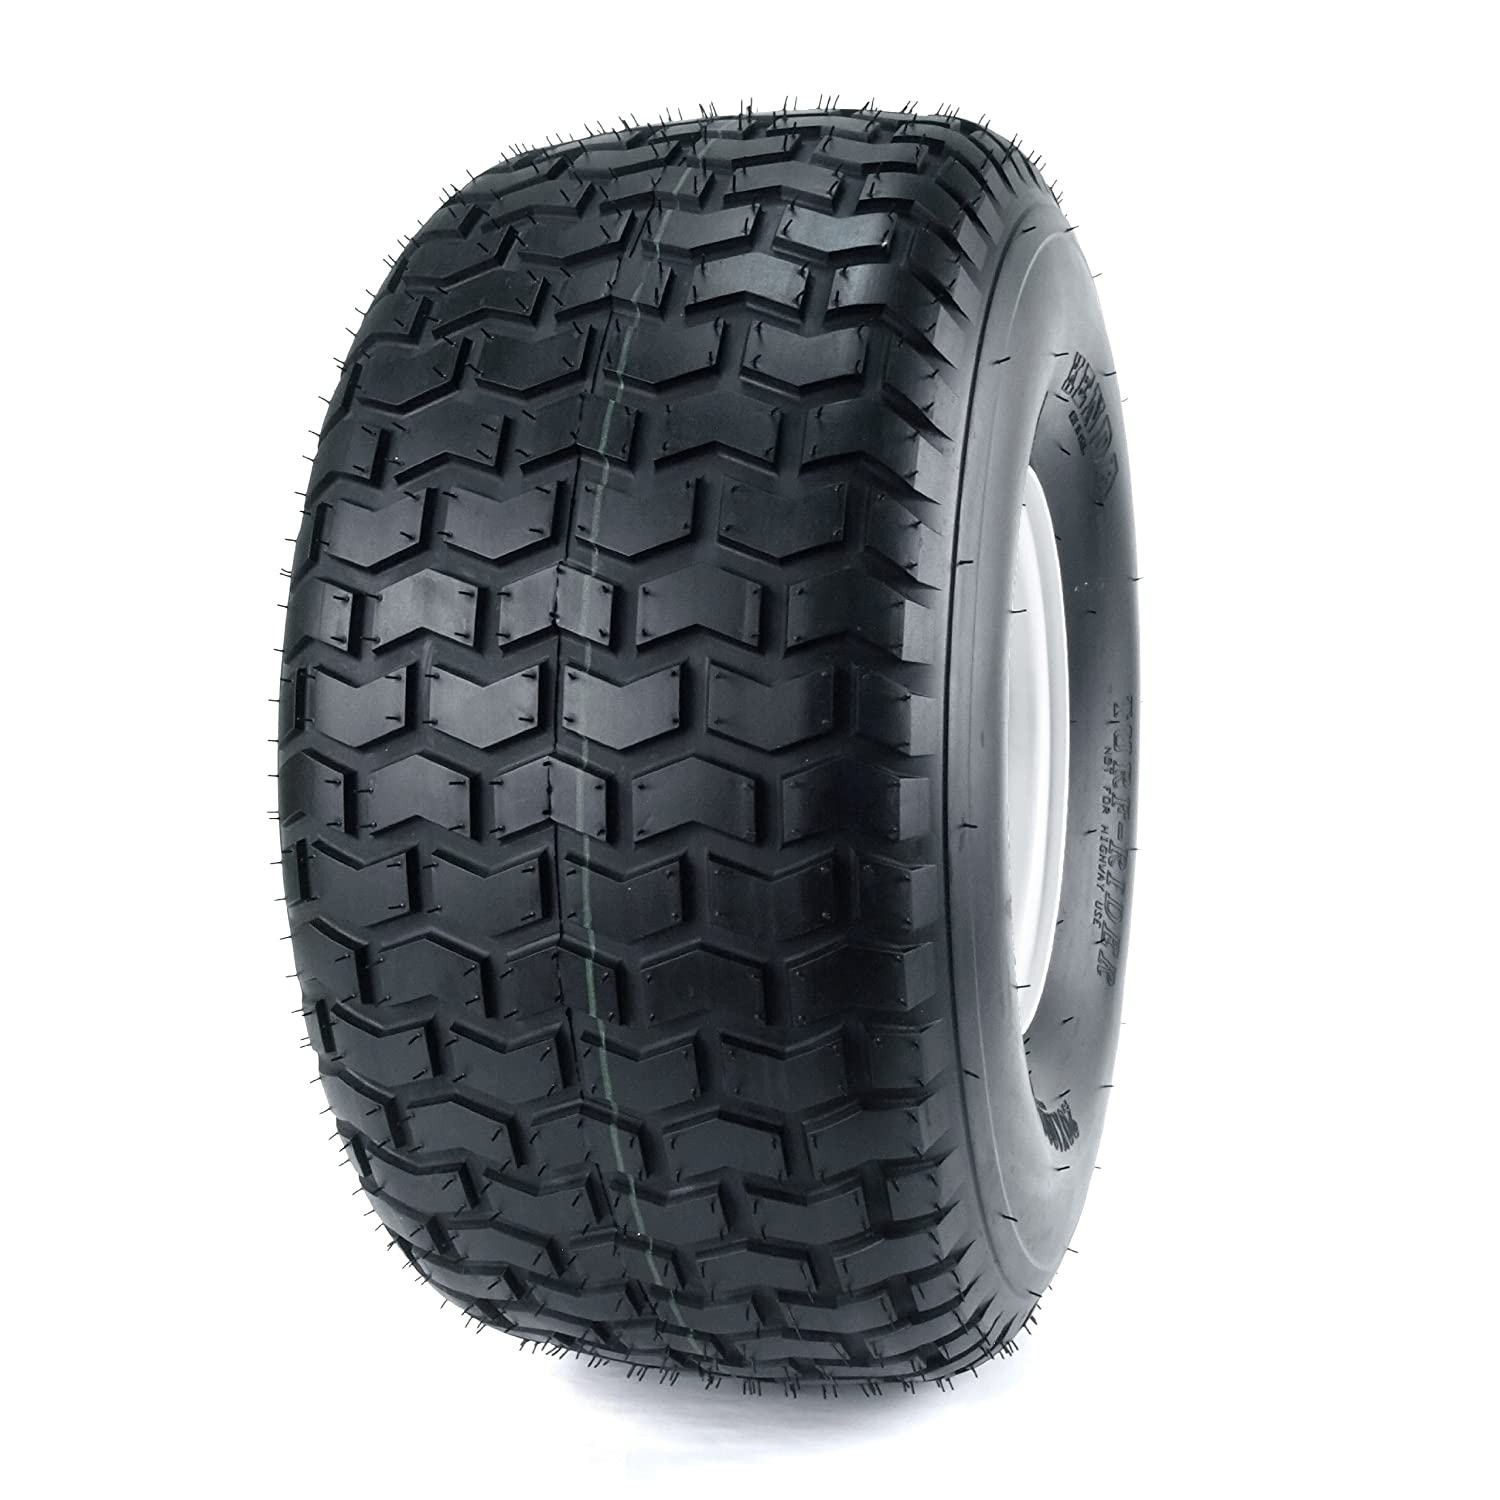 Kenda K358 Turf Rider Lawn and Garden Bias Tire - 20/10-8 1008-2TR-I